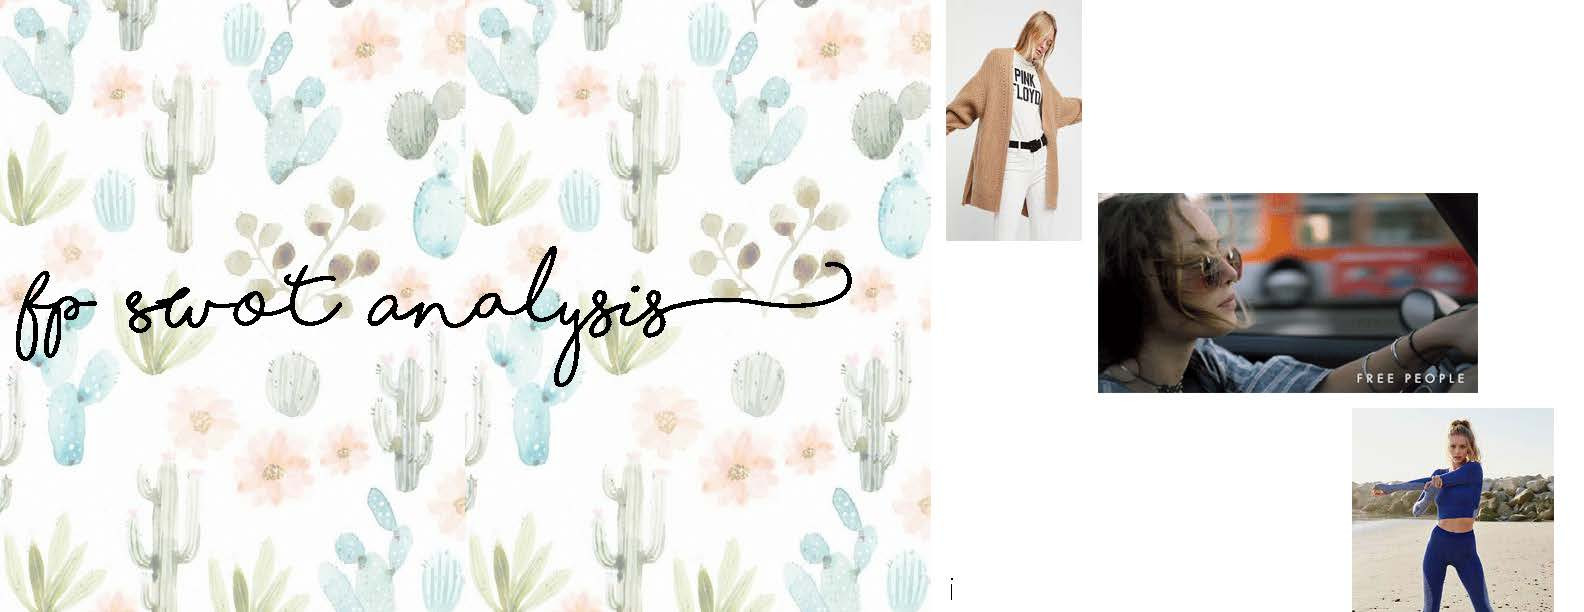 FREE PEOPLE BUYING PROJECT_Page_40.jpg